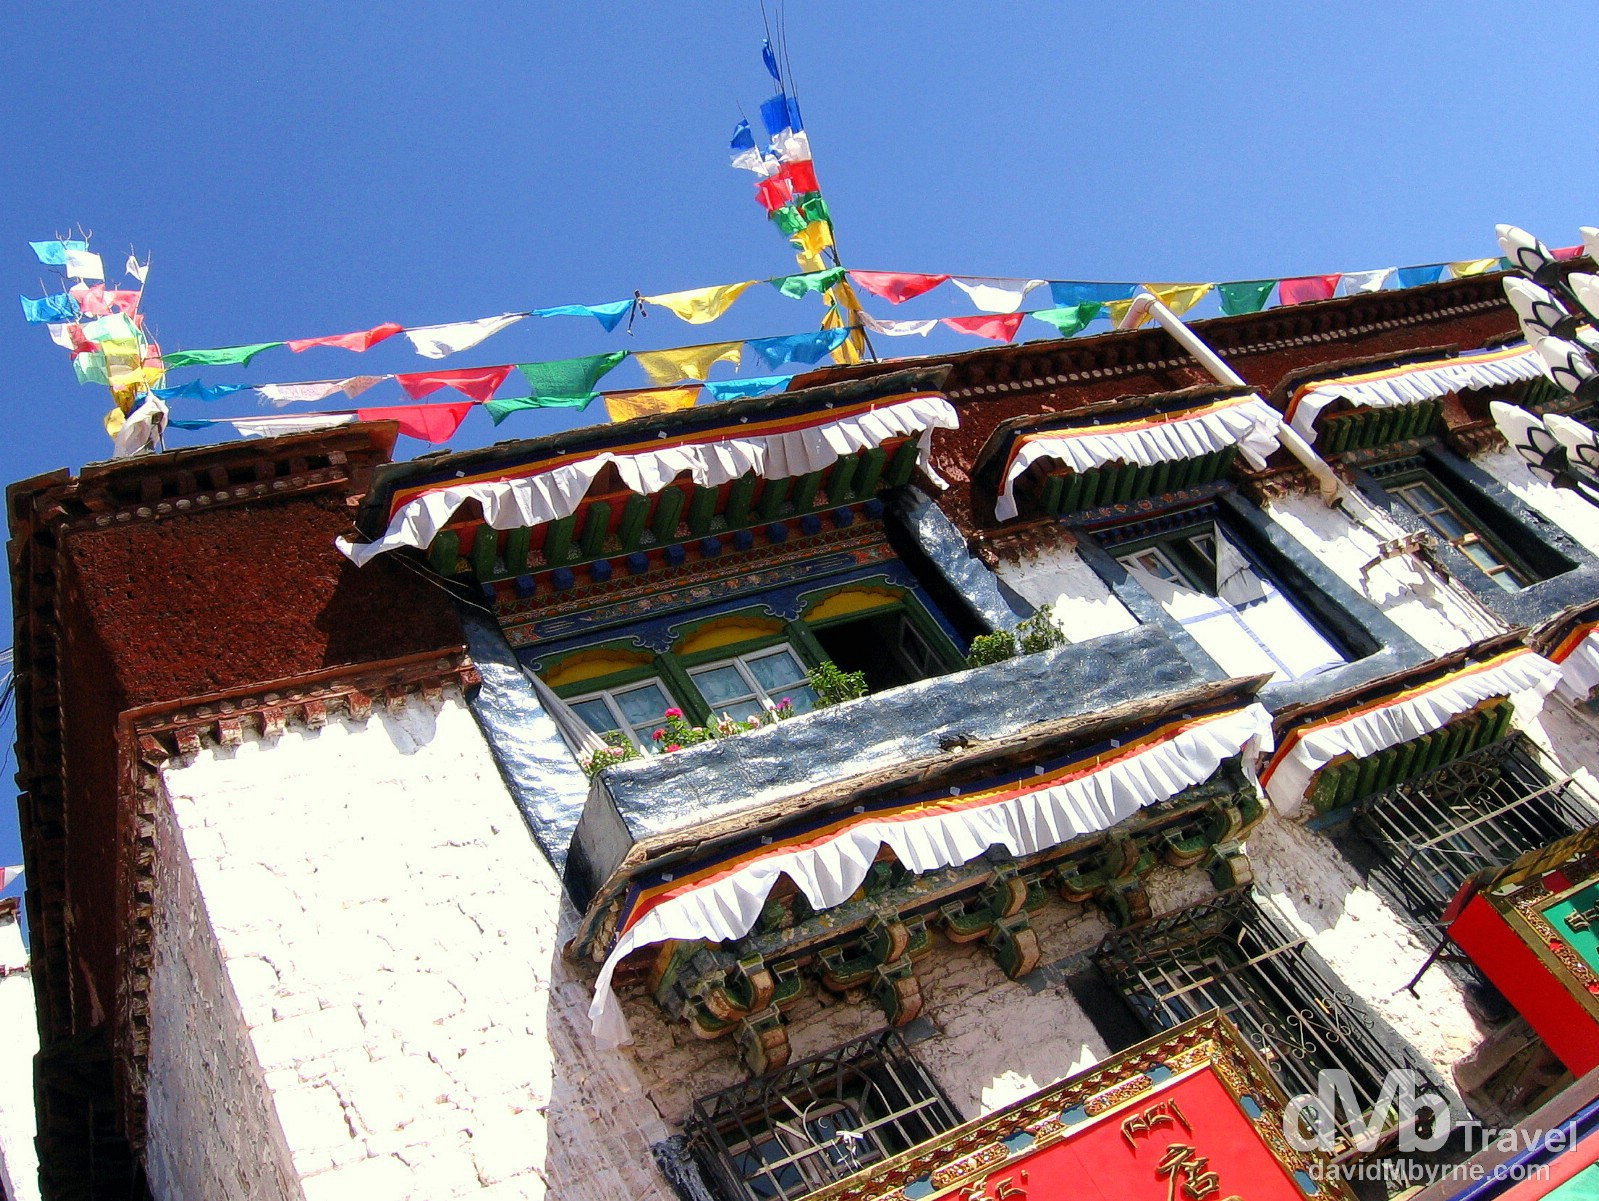 A building in Barkhor, Lhasa, Tibet. February 25th, 2008.